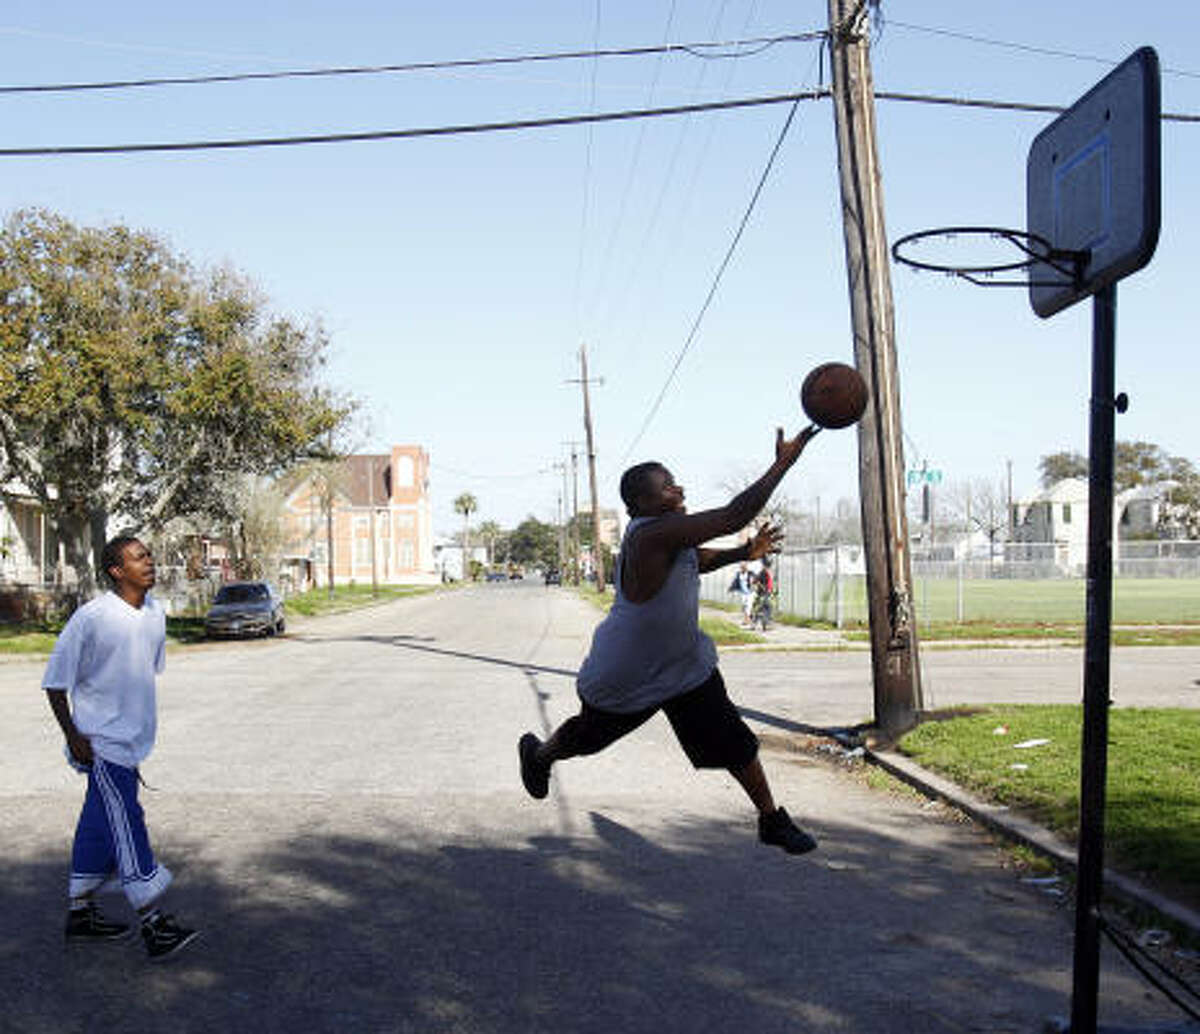 Robert Allen, left, and Mister Bates play basketball down the street from the Avenue L Missionary Baptist Church, the oldest black church in Texas. The black population of the Island dropped sharply in the first decade of the new century.